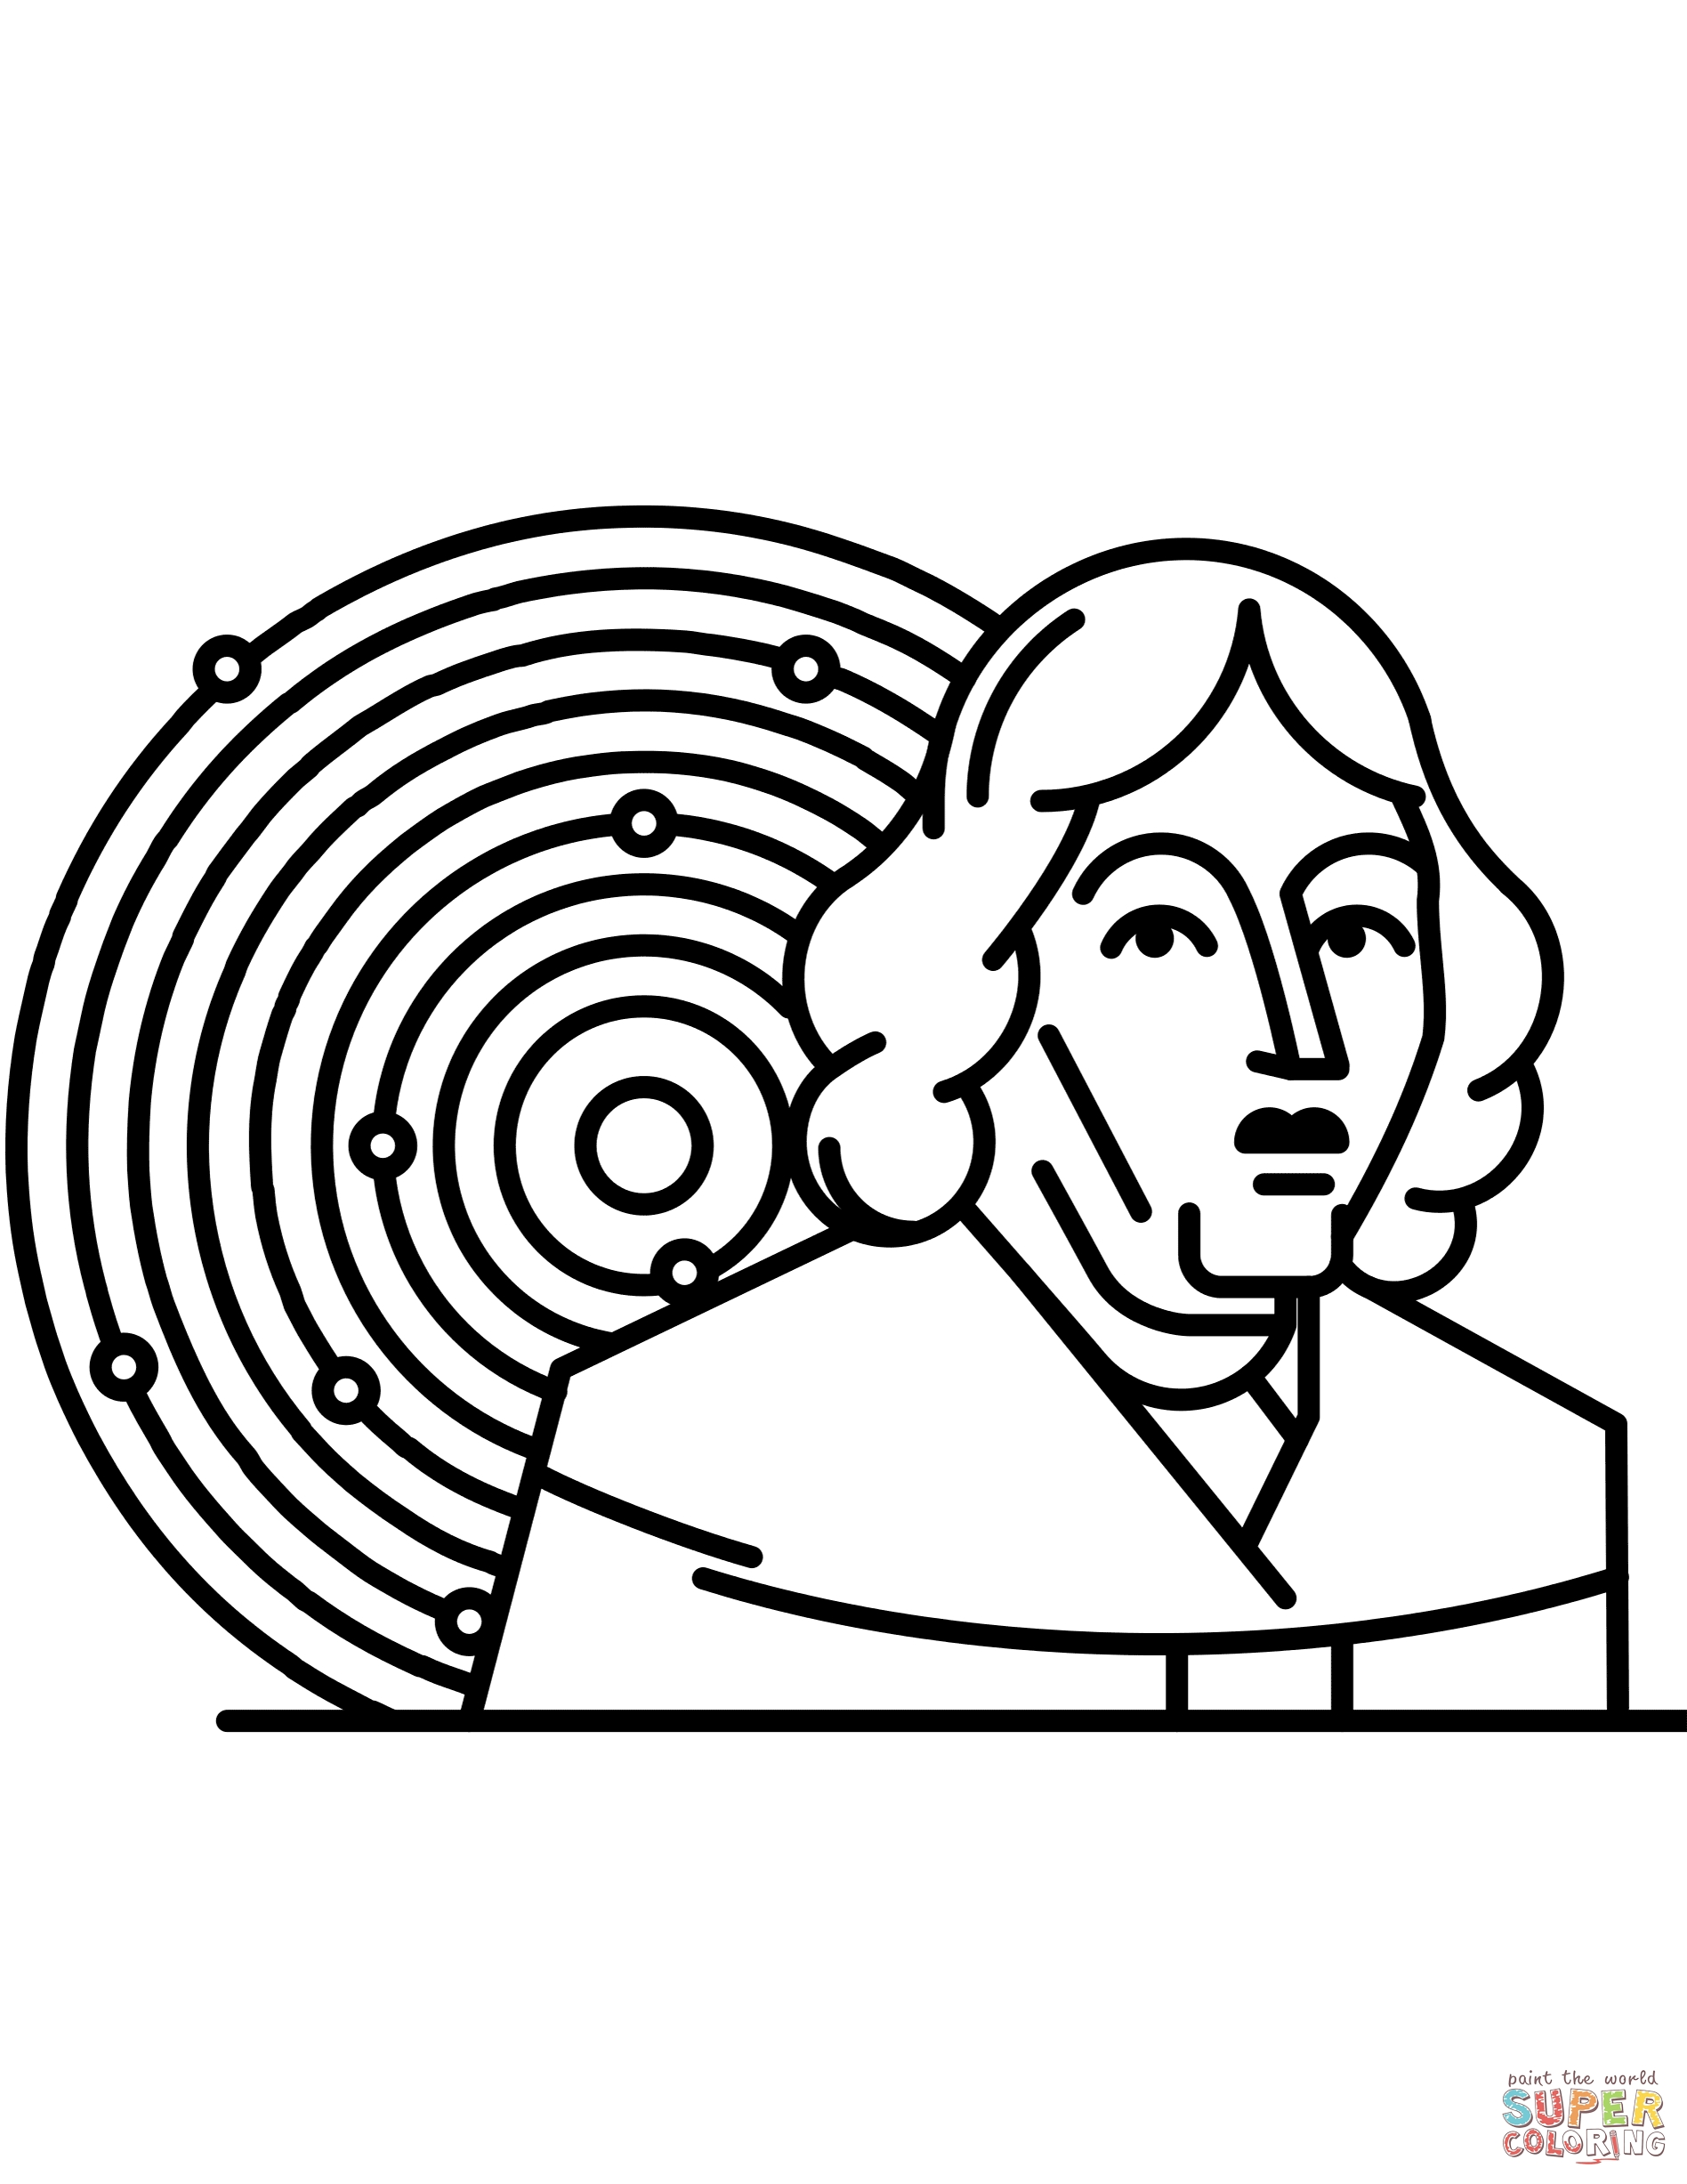 solar system coloring pages - copernicus and solar system